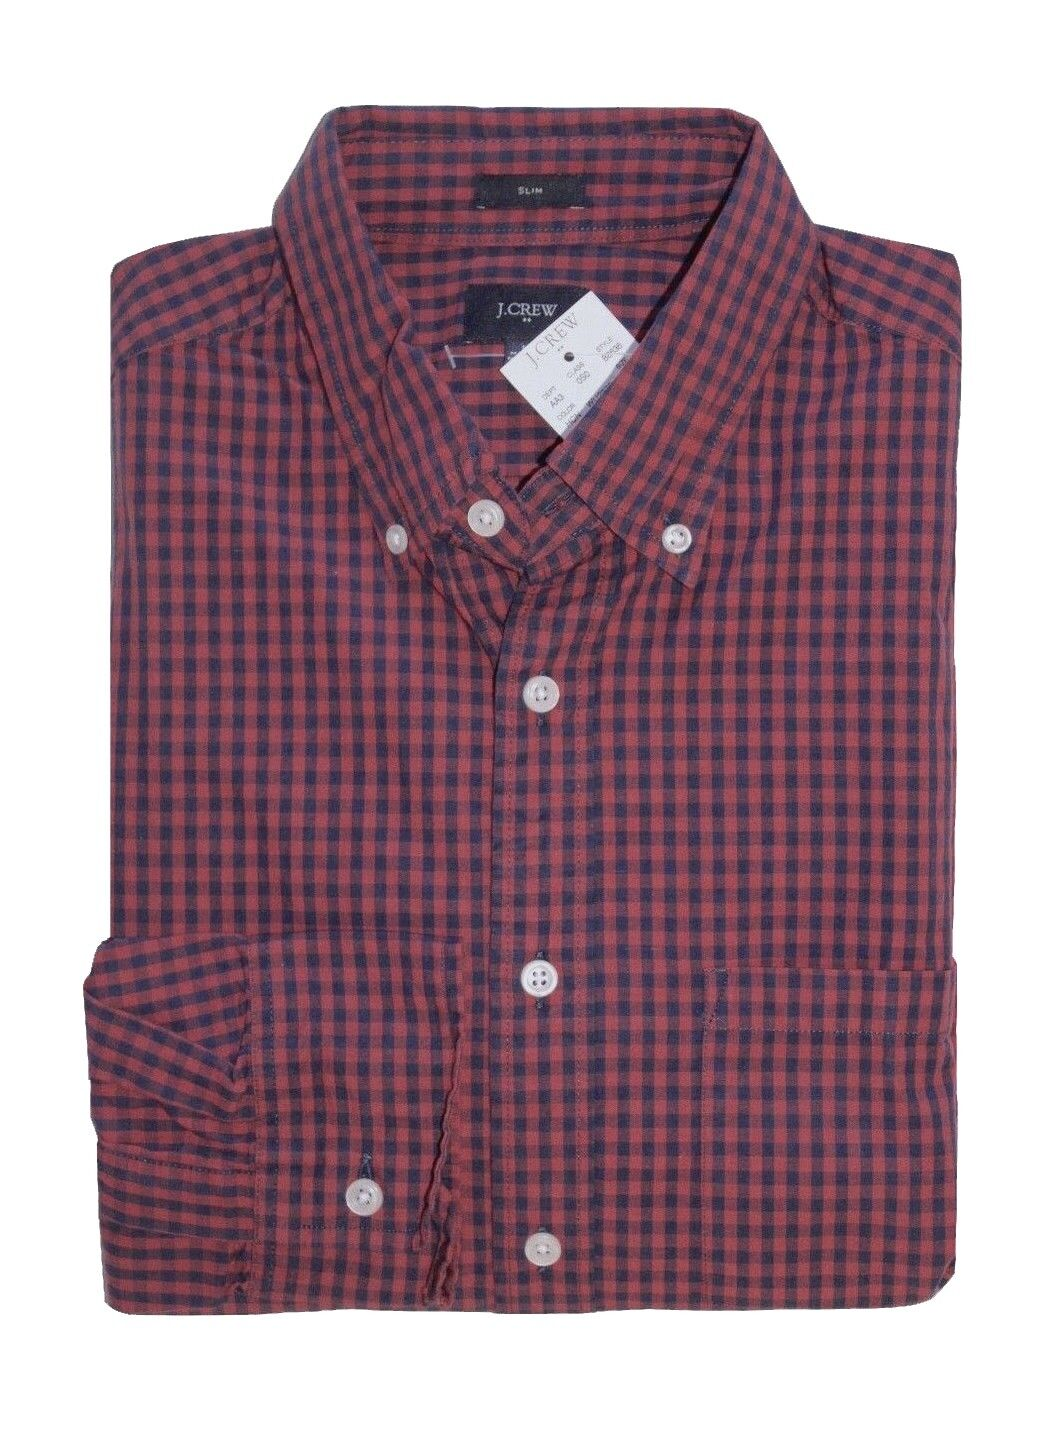 J Crew Factory - Mens XL - Slim Fit - Red Navy Micro-Gingham Plaid Washed Shirt